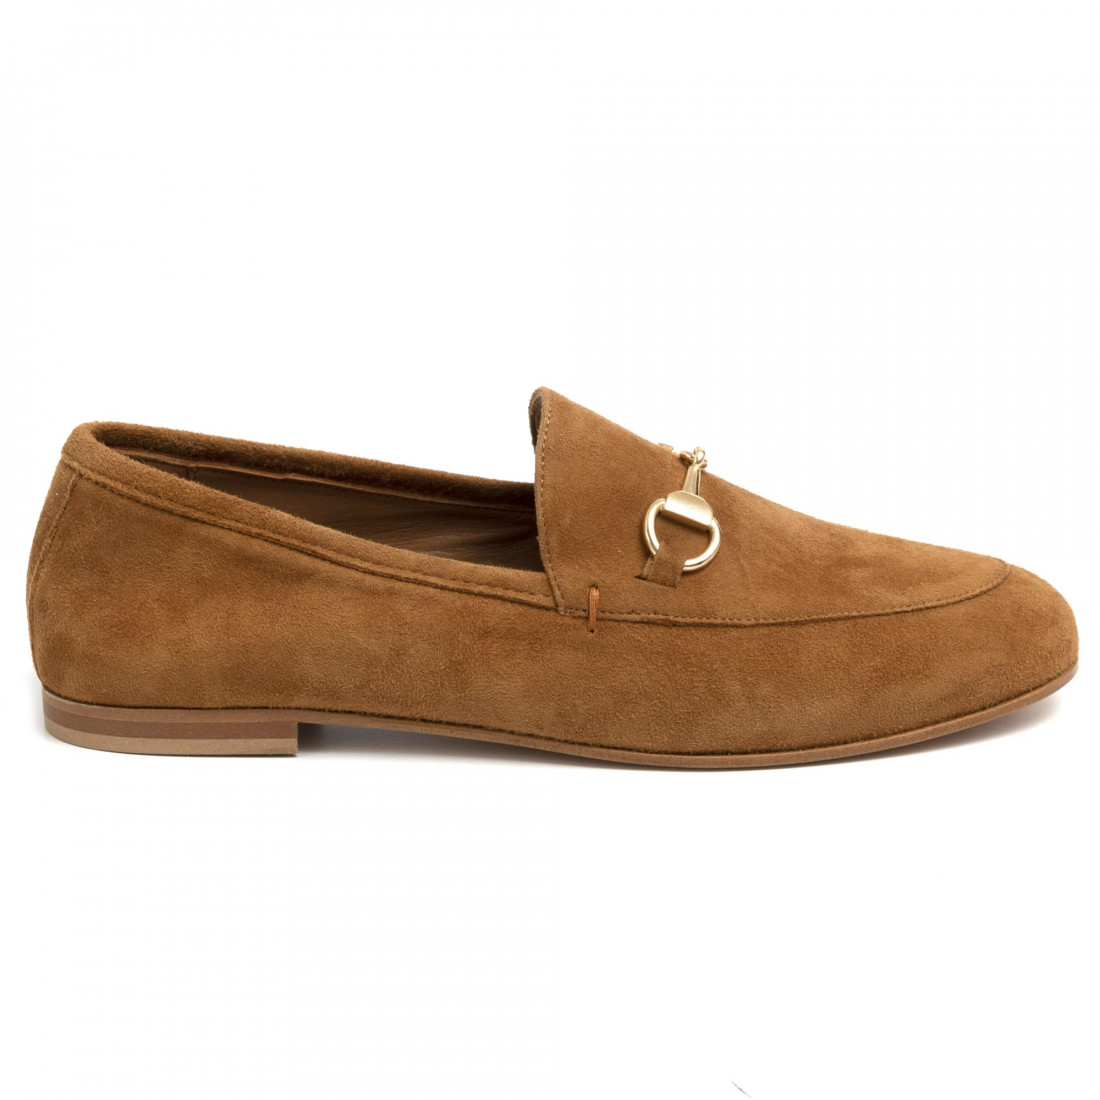 loafers woman les tulipes 601cam cuoio 7118